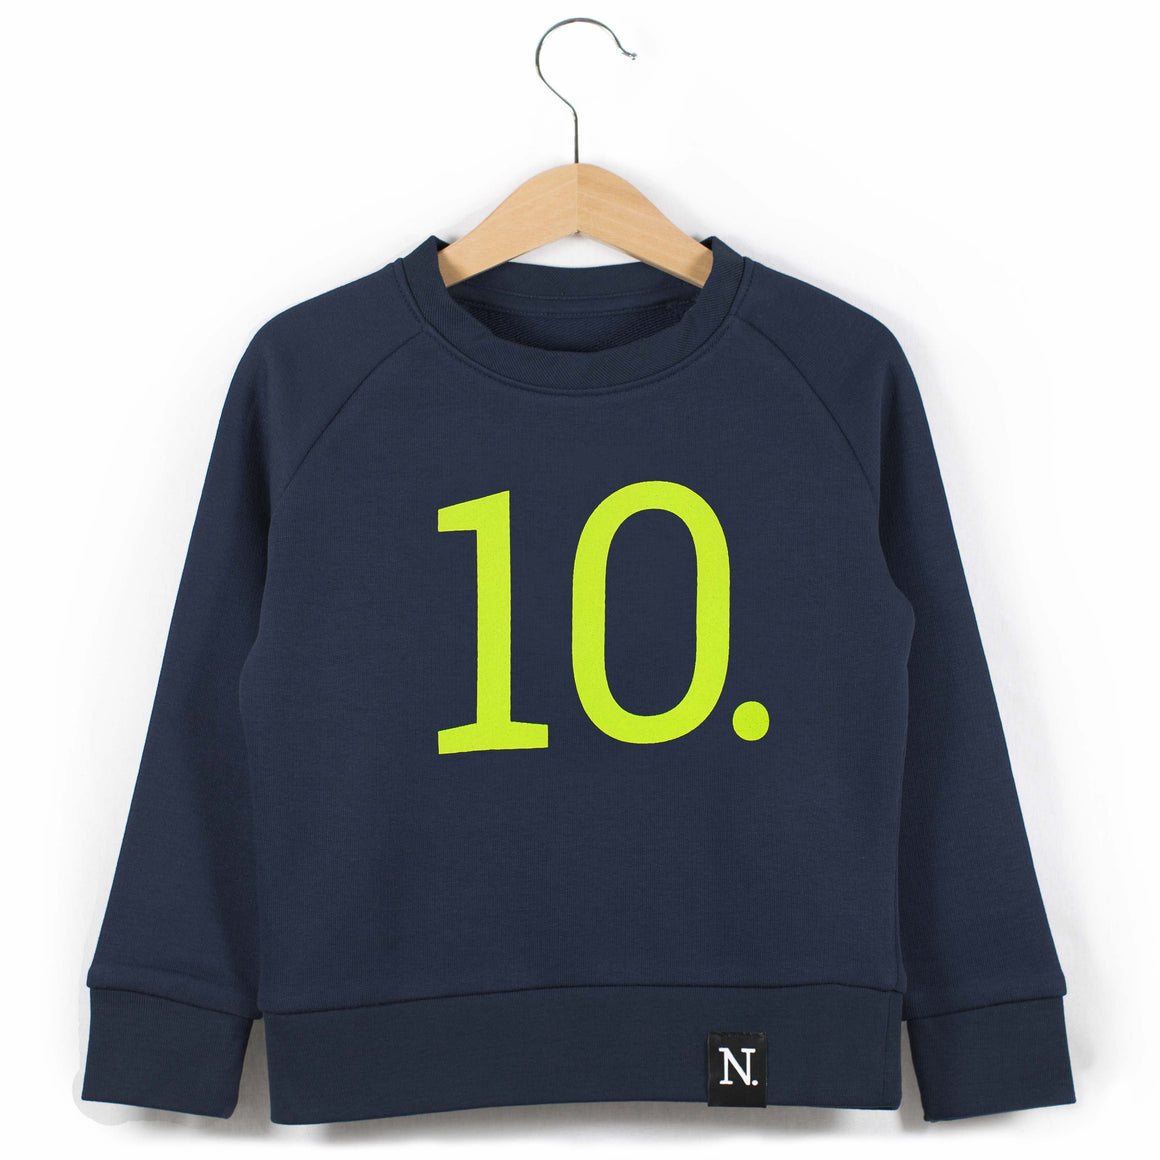 The Number 10 navy sweatshirt front